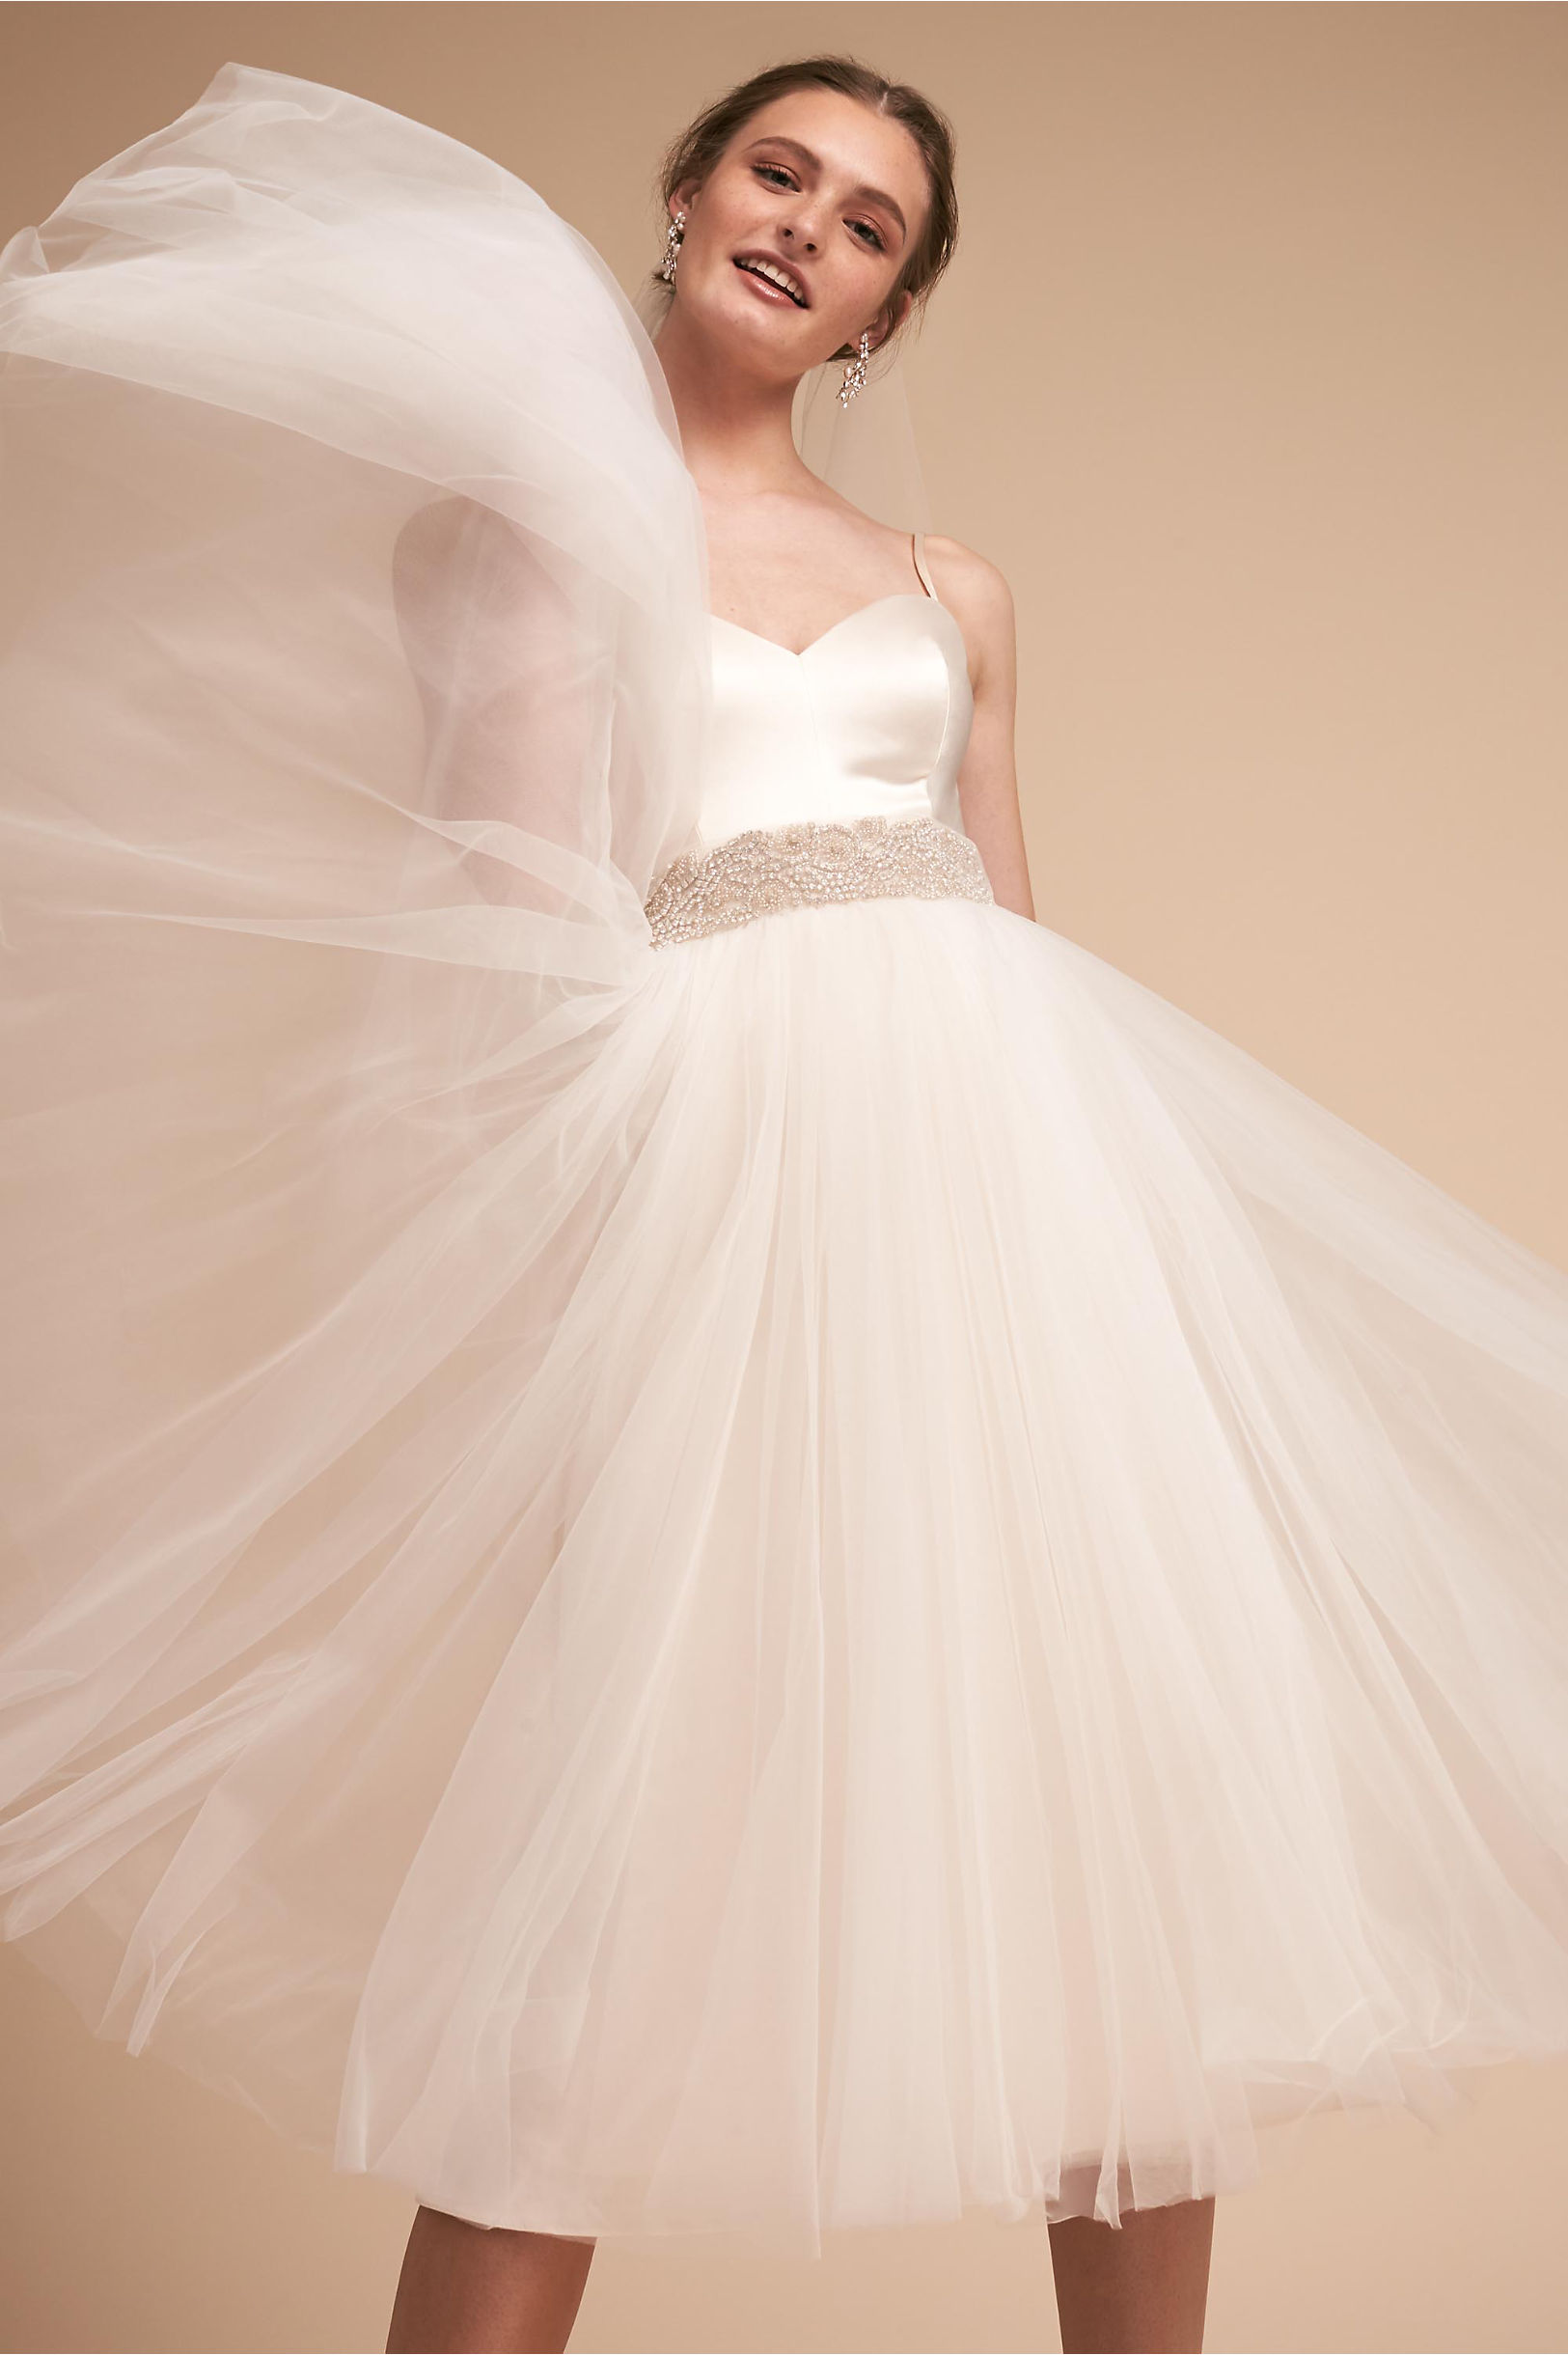 833dfcc8def Camilla short cocktail wedding dress sweetheart neckline thin straps  catherine deane bhldn spring 2018 ""